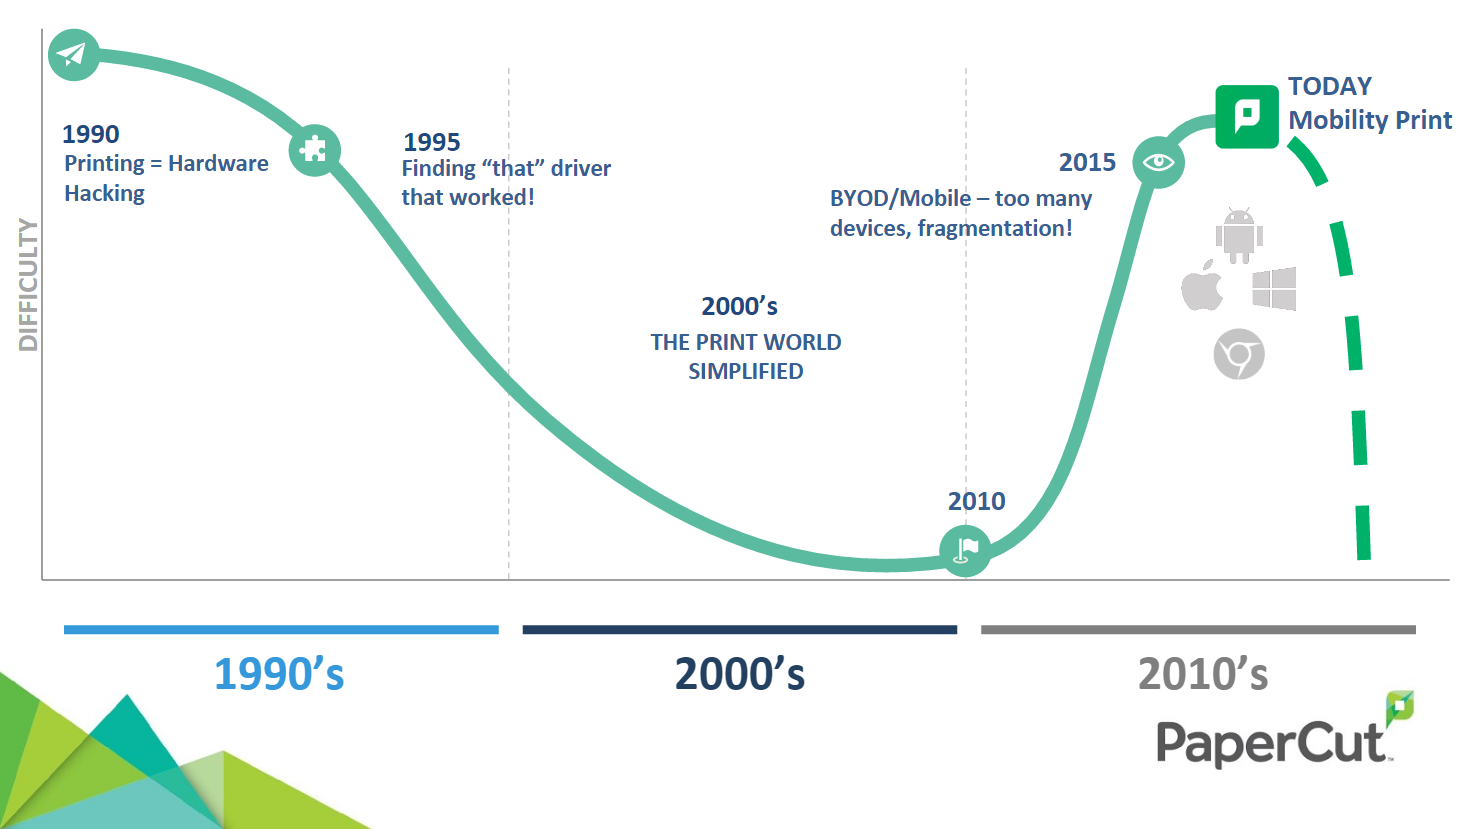 Timeline showing printing history and its difficulties over the years. Mobility Print makes printing with all types of BYOD devices and platforms easy nowadays.